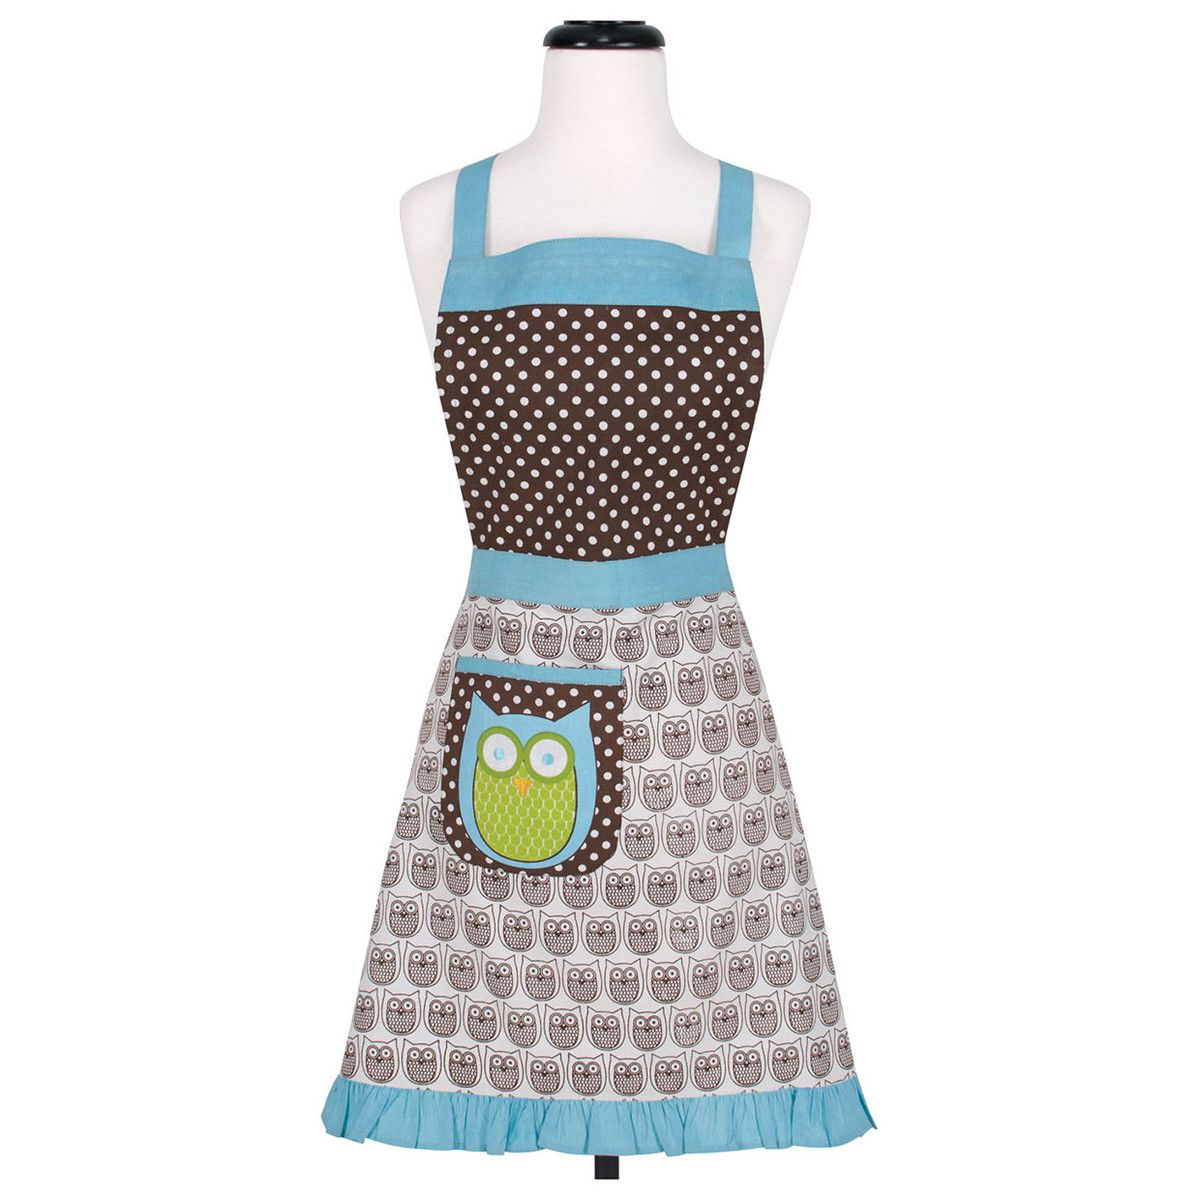 Hoot Stuff Full Apron By Kaf Home Aprons Vintage Apron Kitchen Aprons